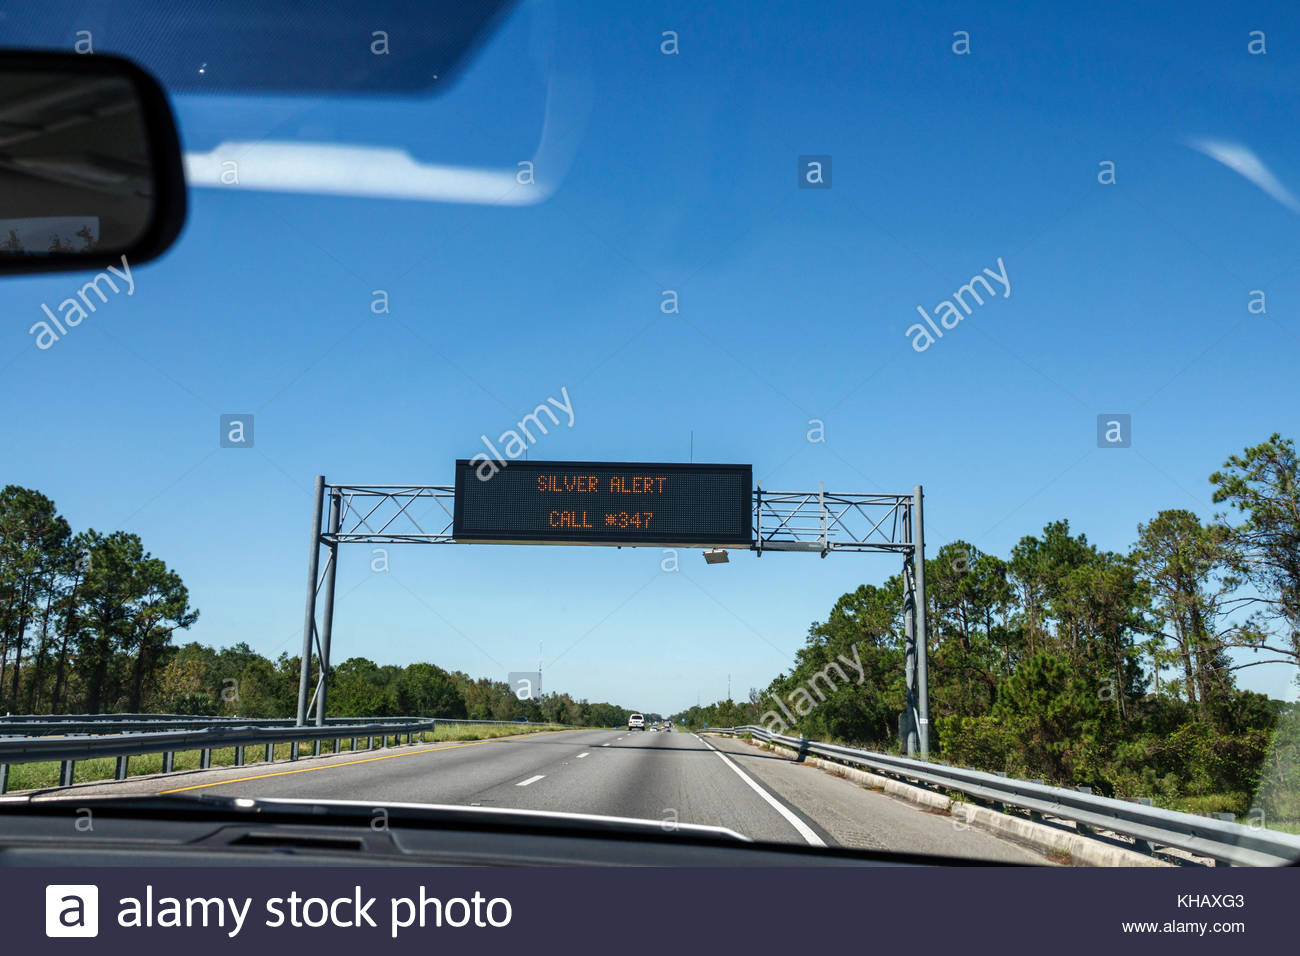 Florida Fort Ft. Pierce Florida Turnpike toll road electronic sign message board silver alert missing senior citizen - Stock Image